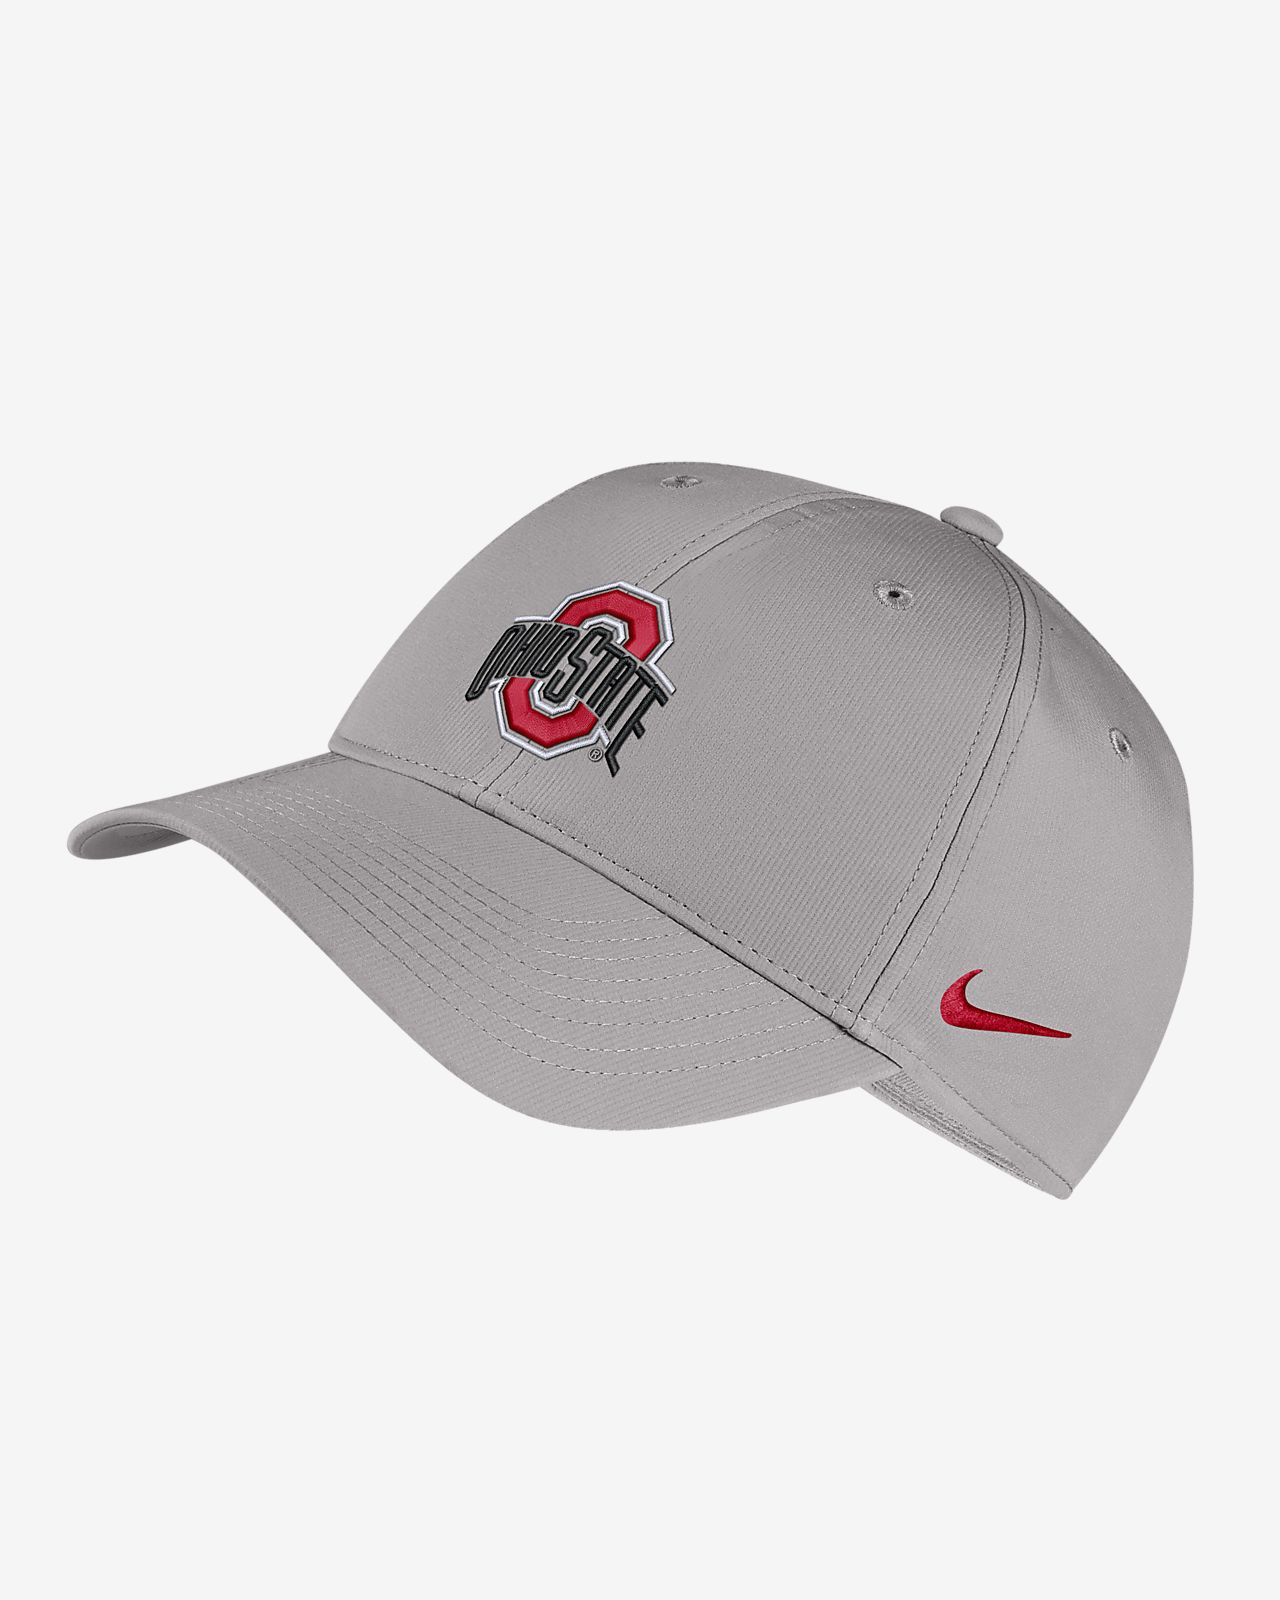 eac5204218a8 Nike College Legacy91 (Ohio State) Adjustable Hat. Nike.com